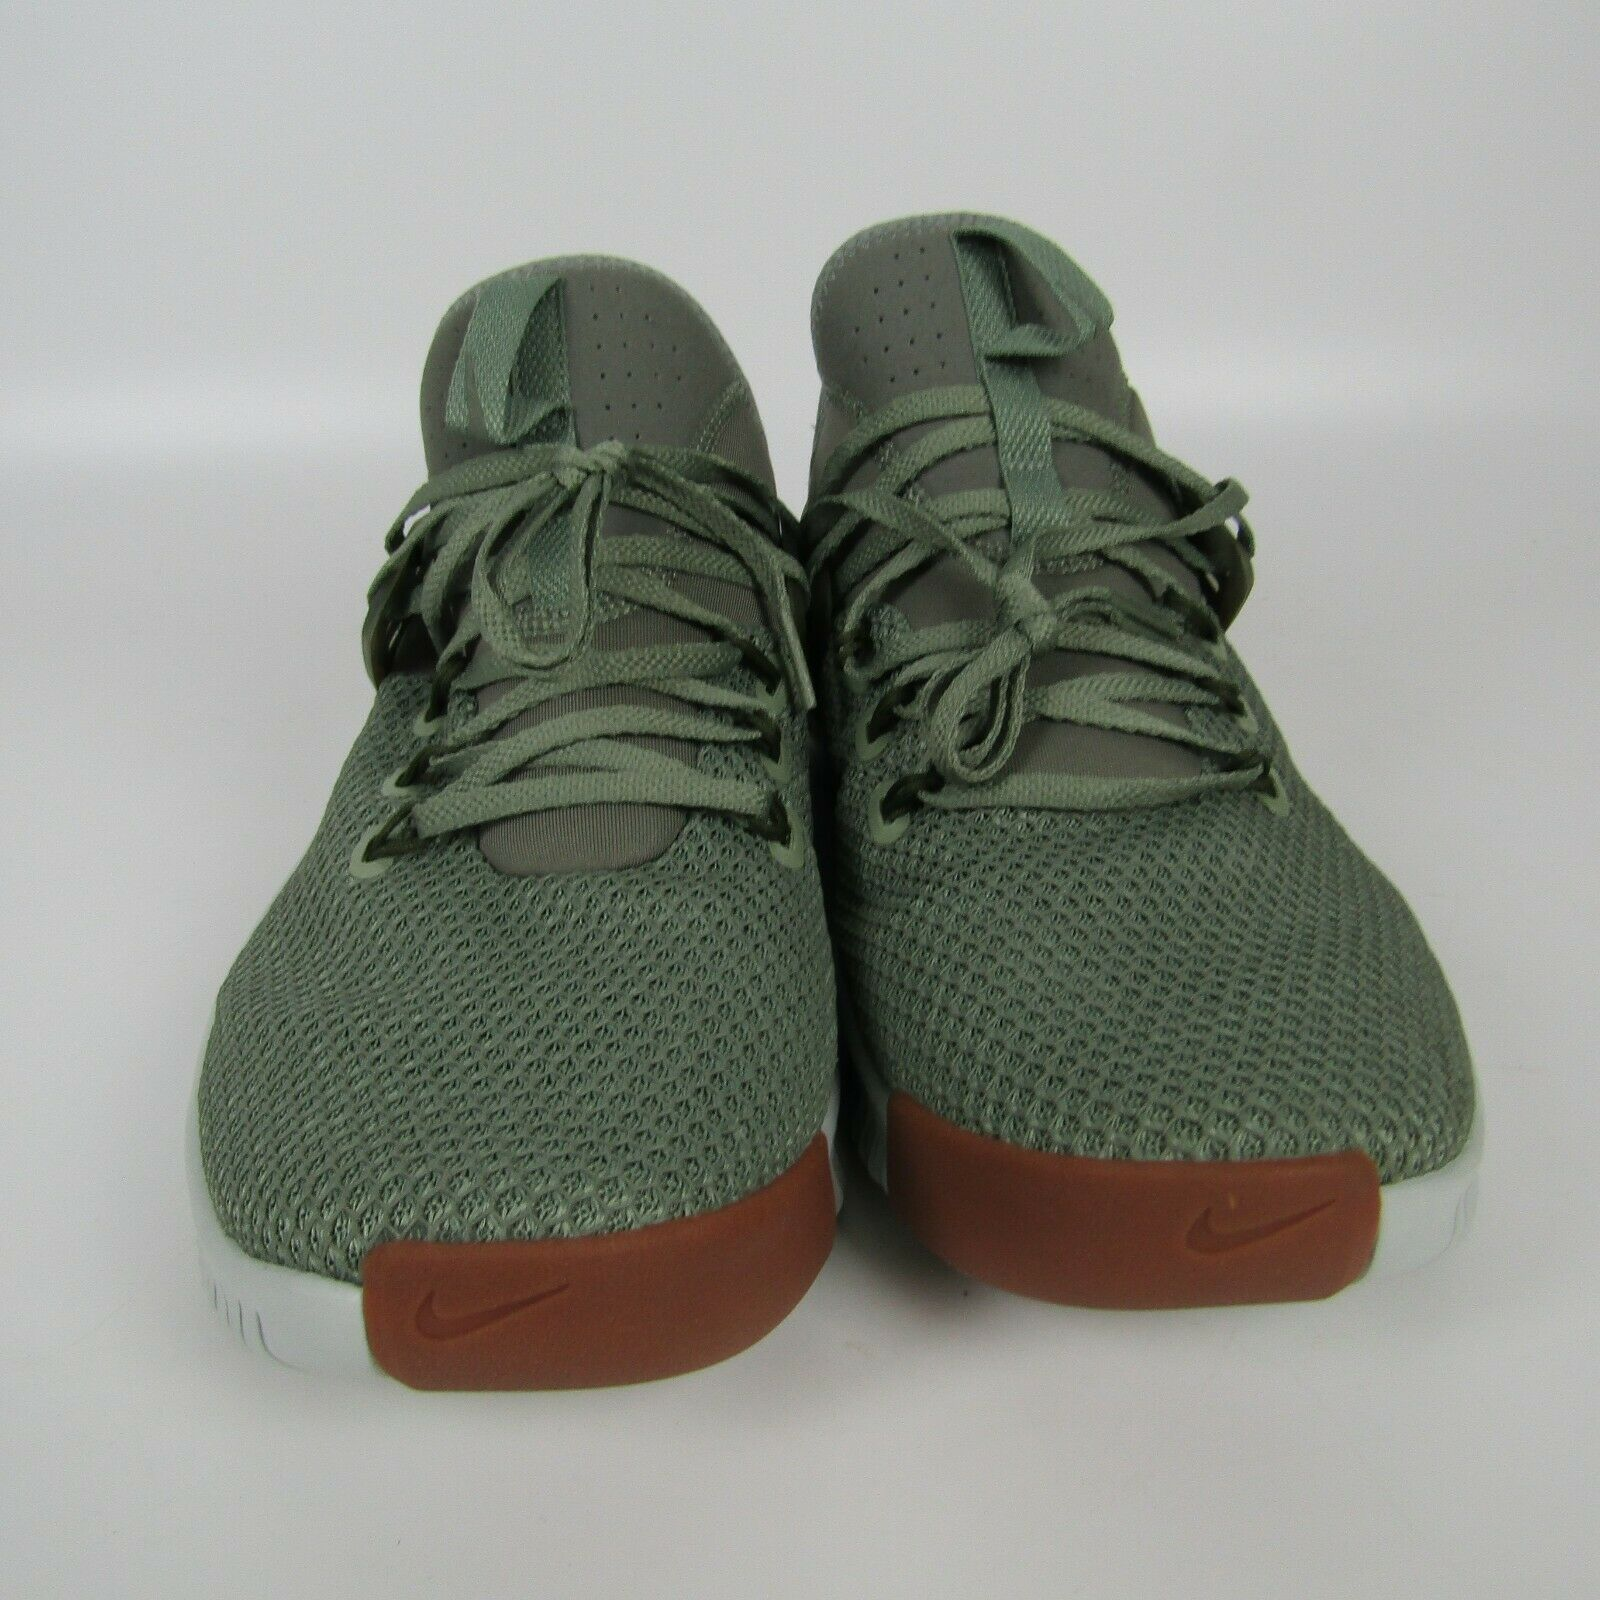 Mens Nike Free Metcon Running Shoes Size 11.5 Green Tan Camo AH8141 002 Trainer image 3